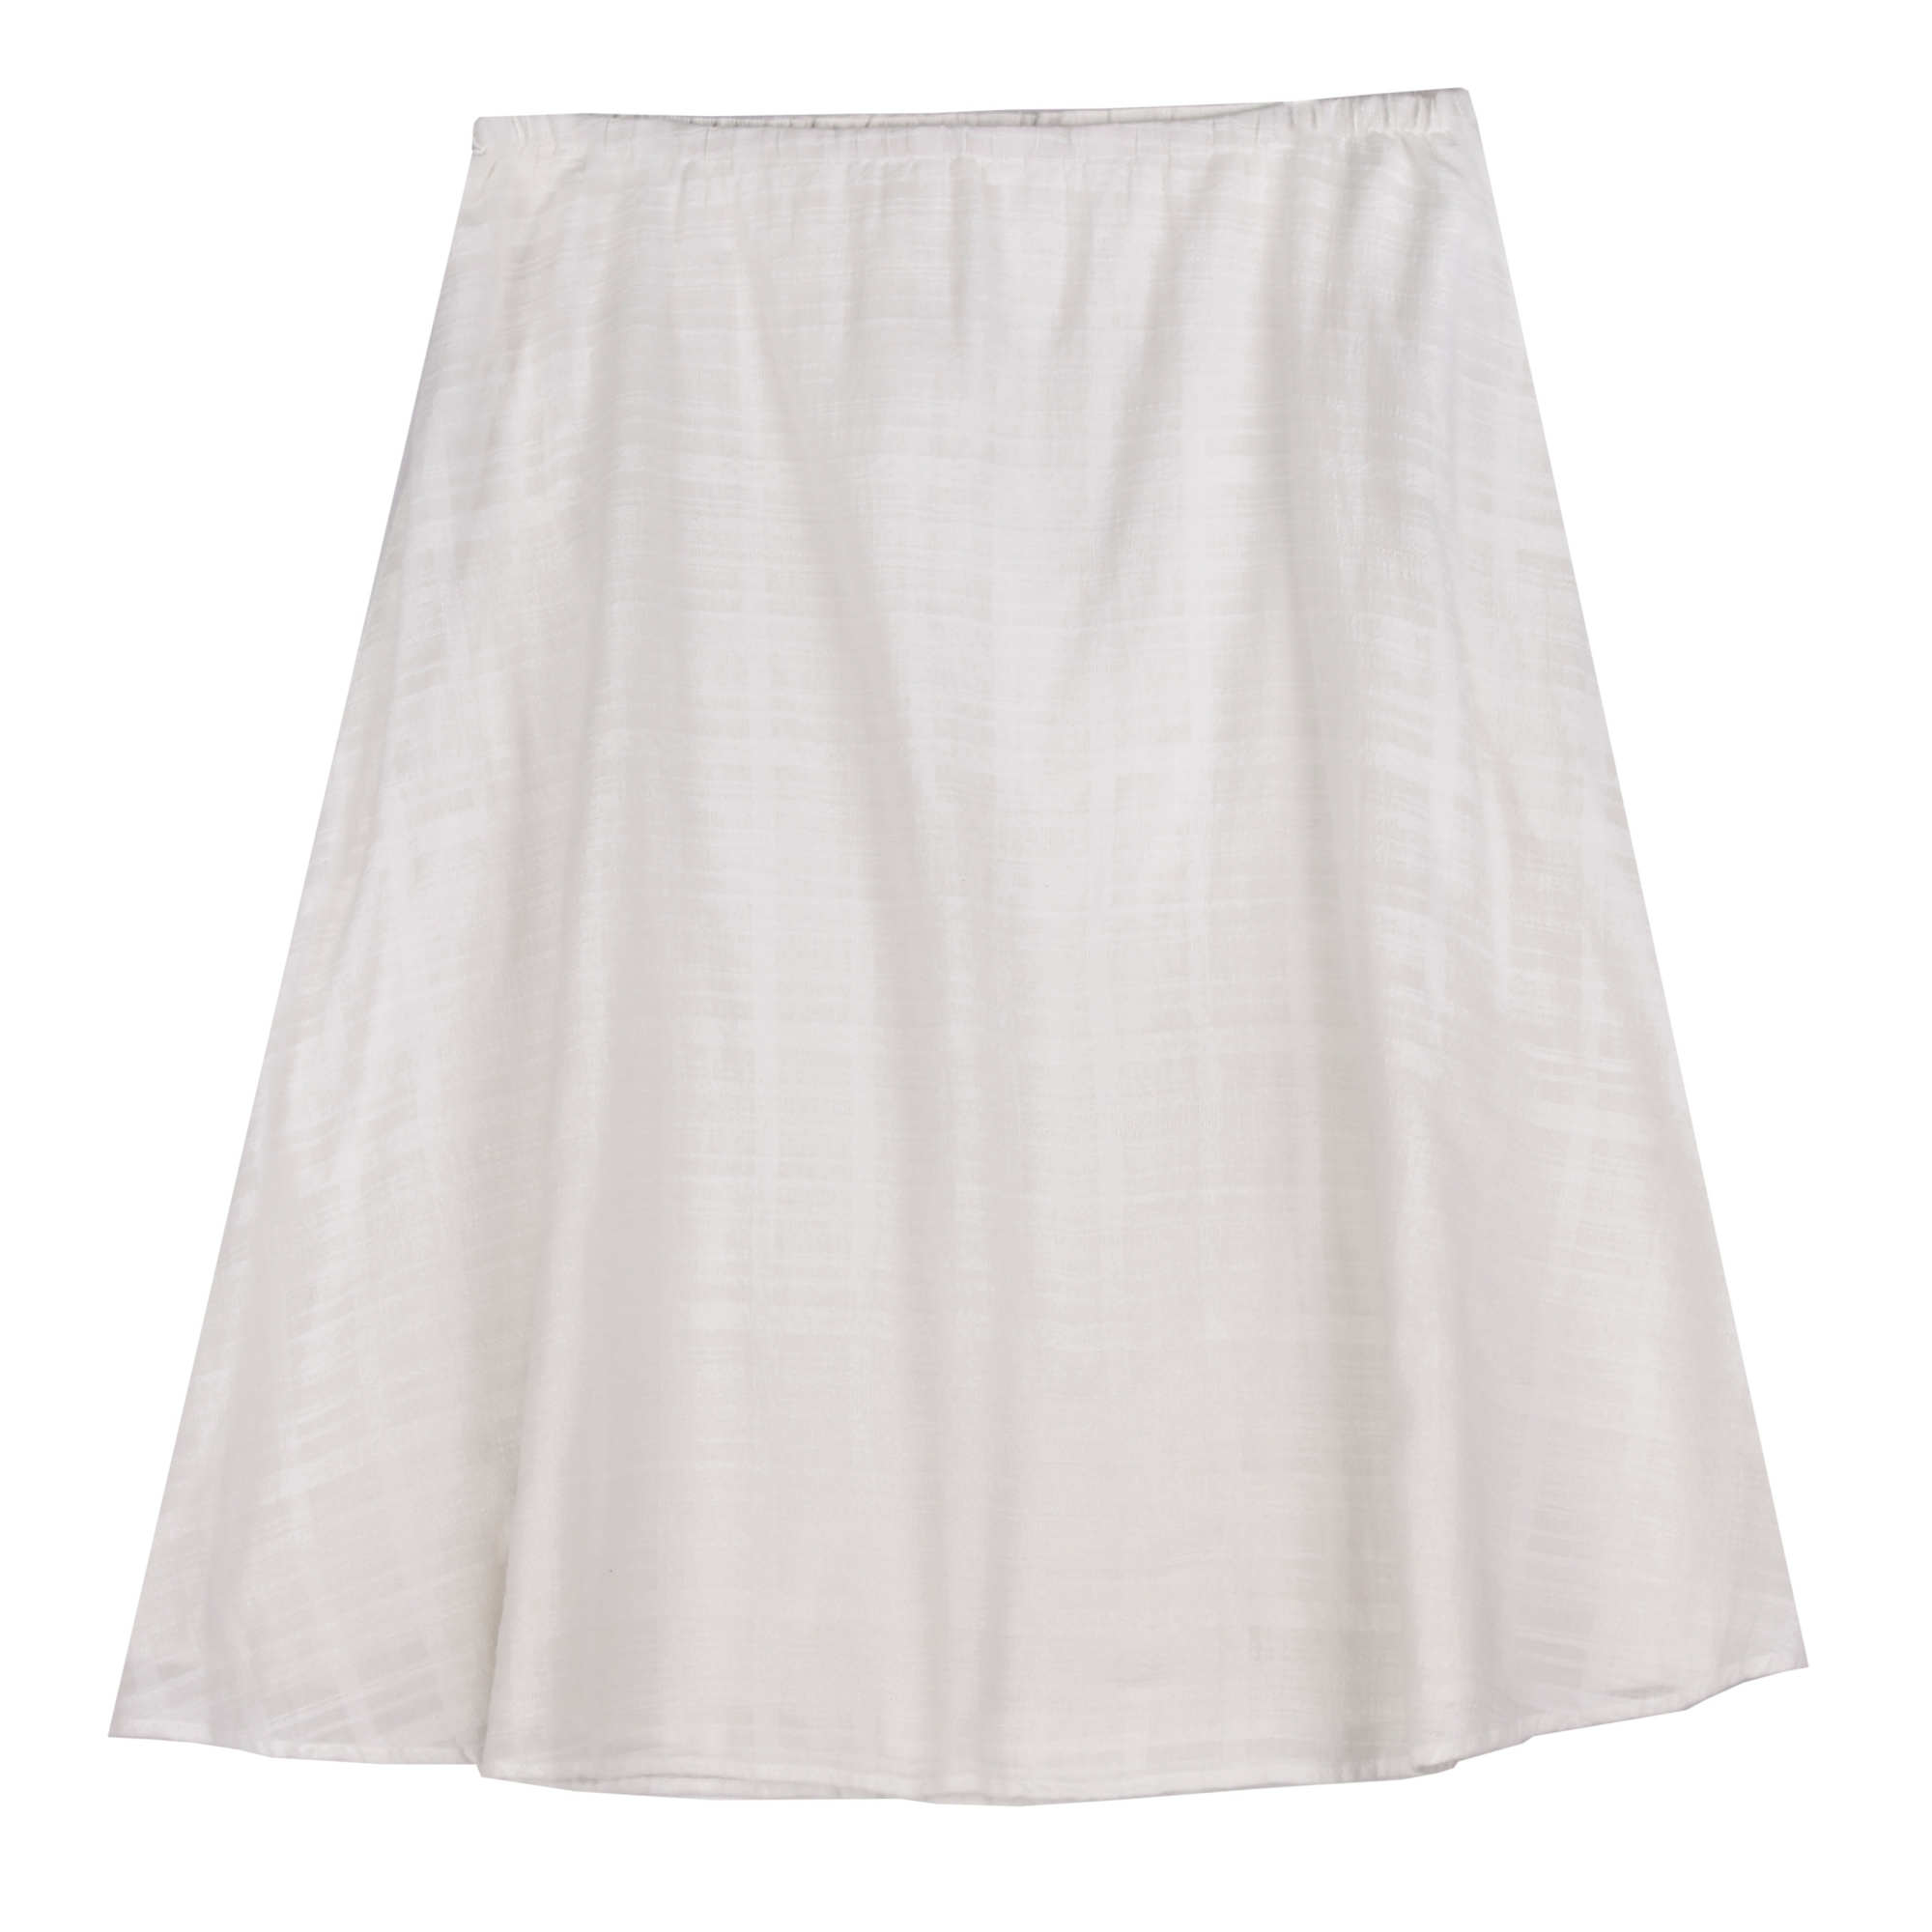 Plush Corduroy Skirt